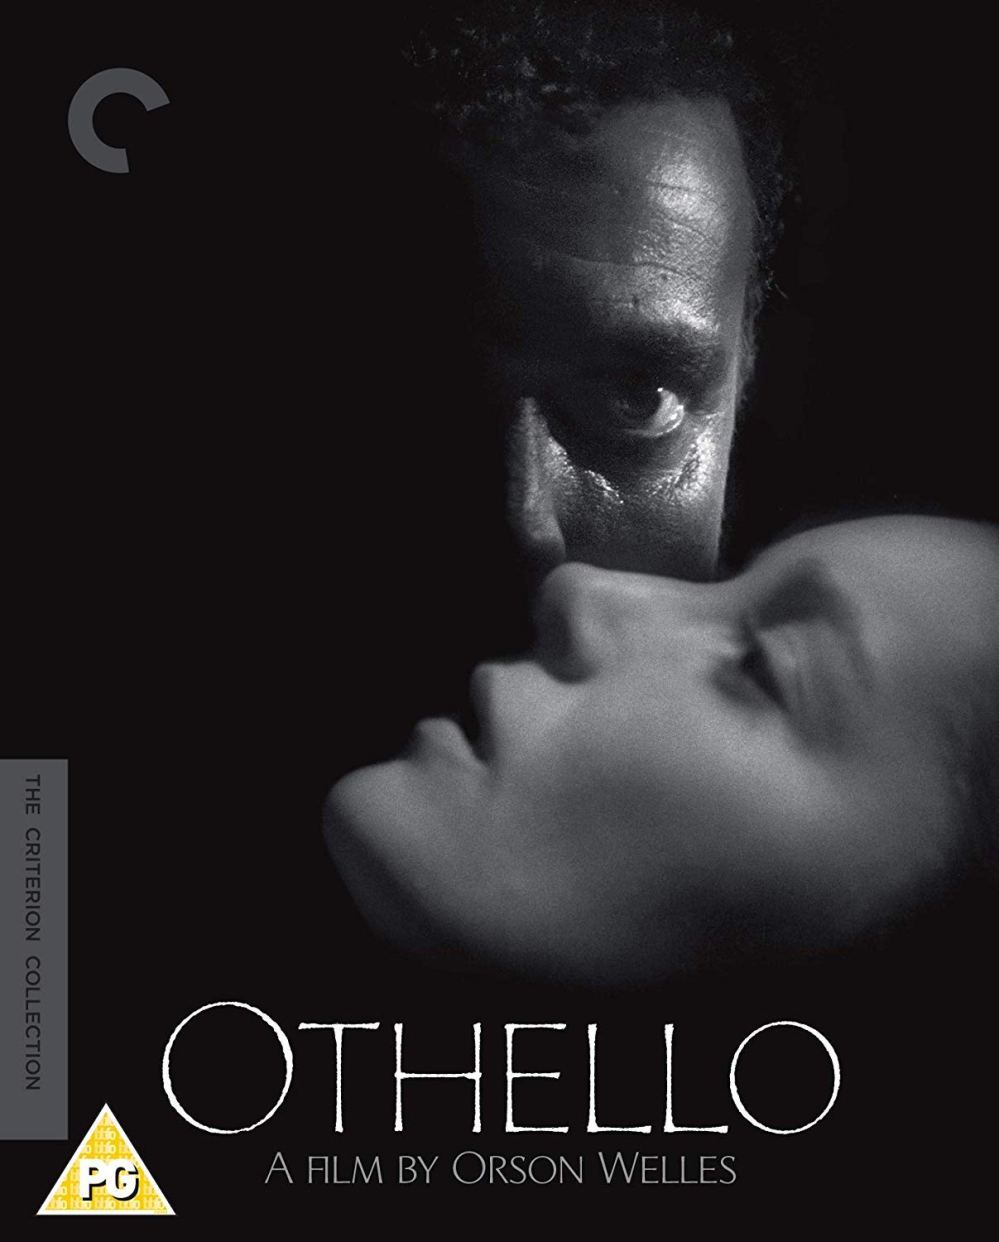 othello blu-ray